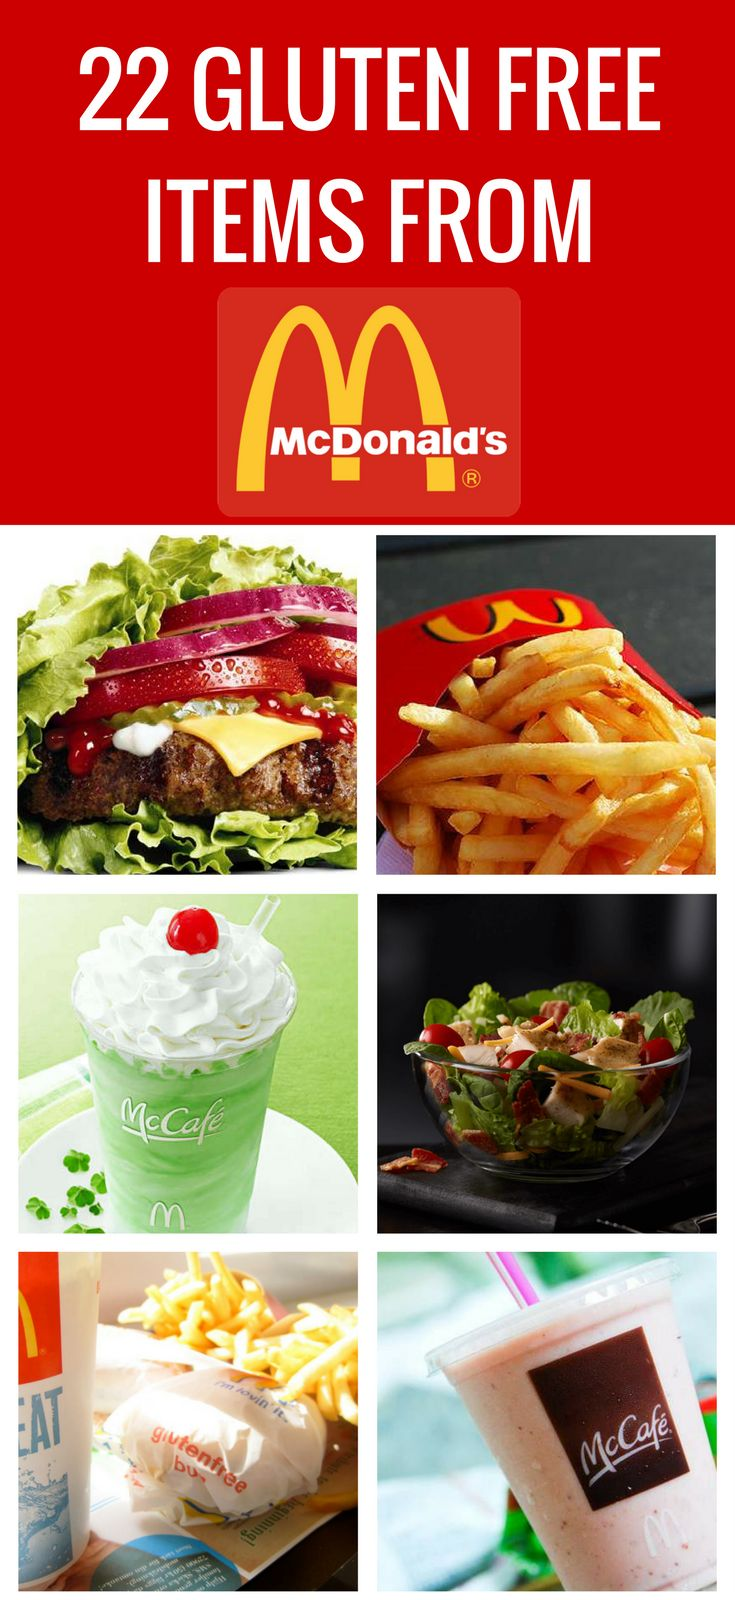 Here are the best gluten free items from McDonald's!